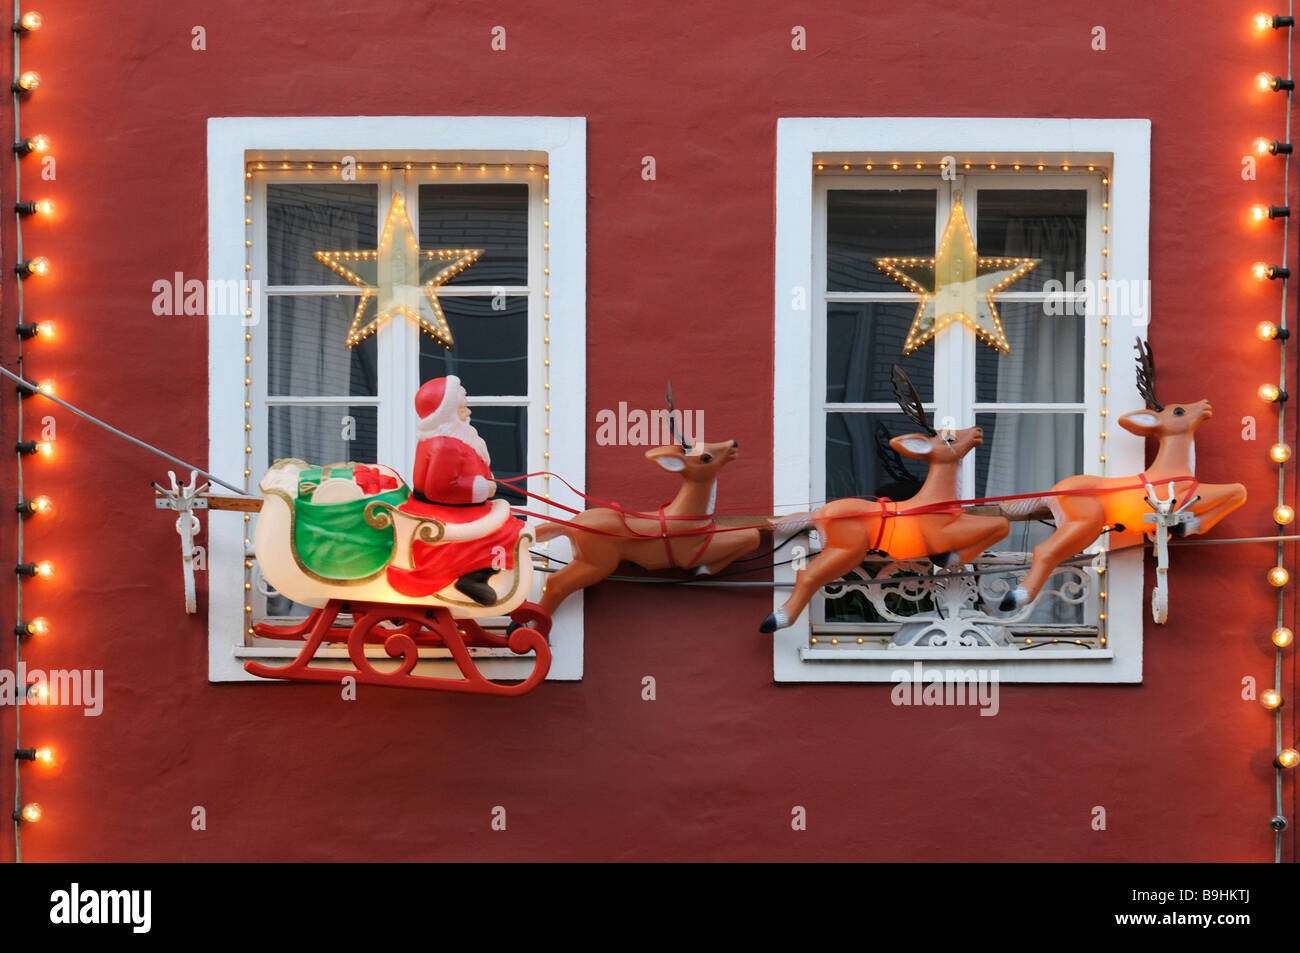 Christmas decoration, Santa on sleigh drawn by reindeer on a red house with white crown glass windows - Stock Image